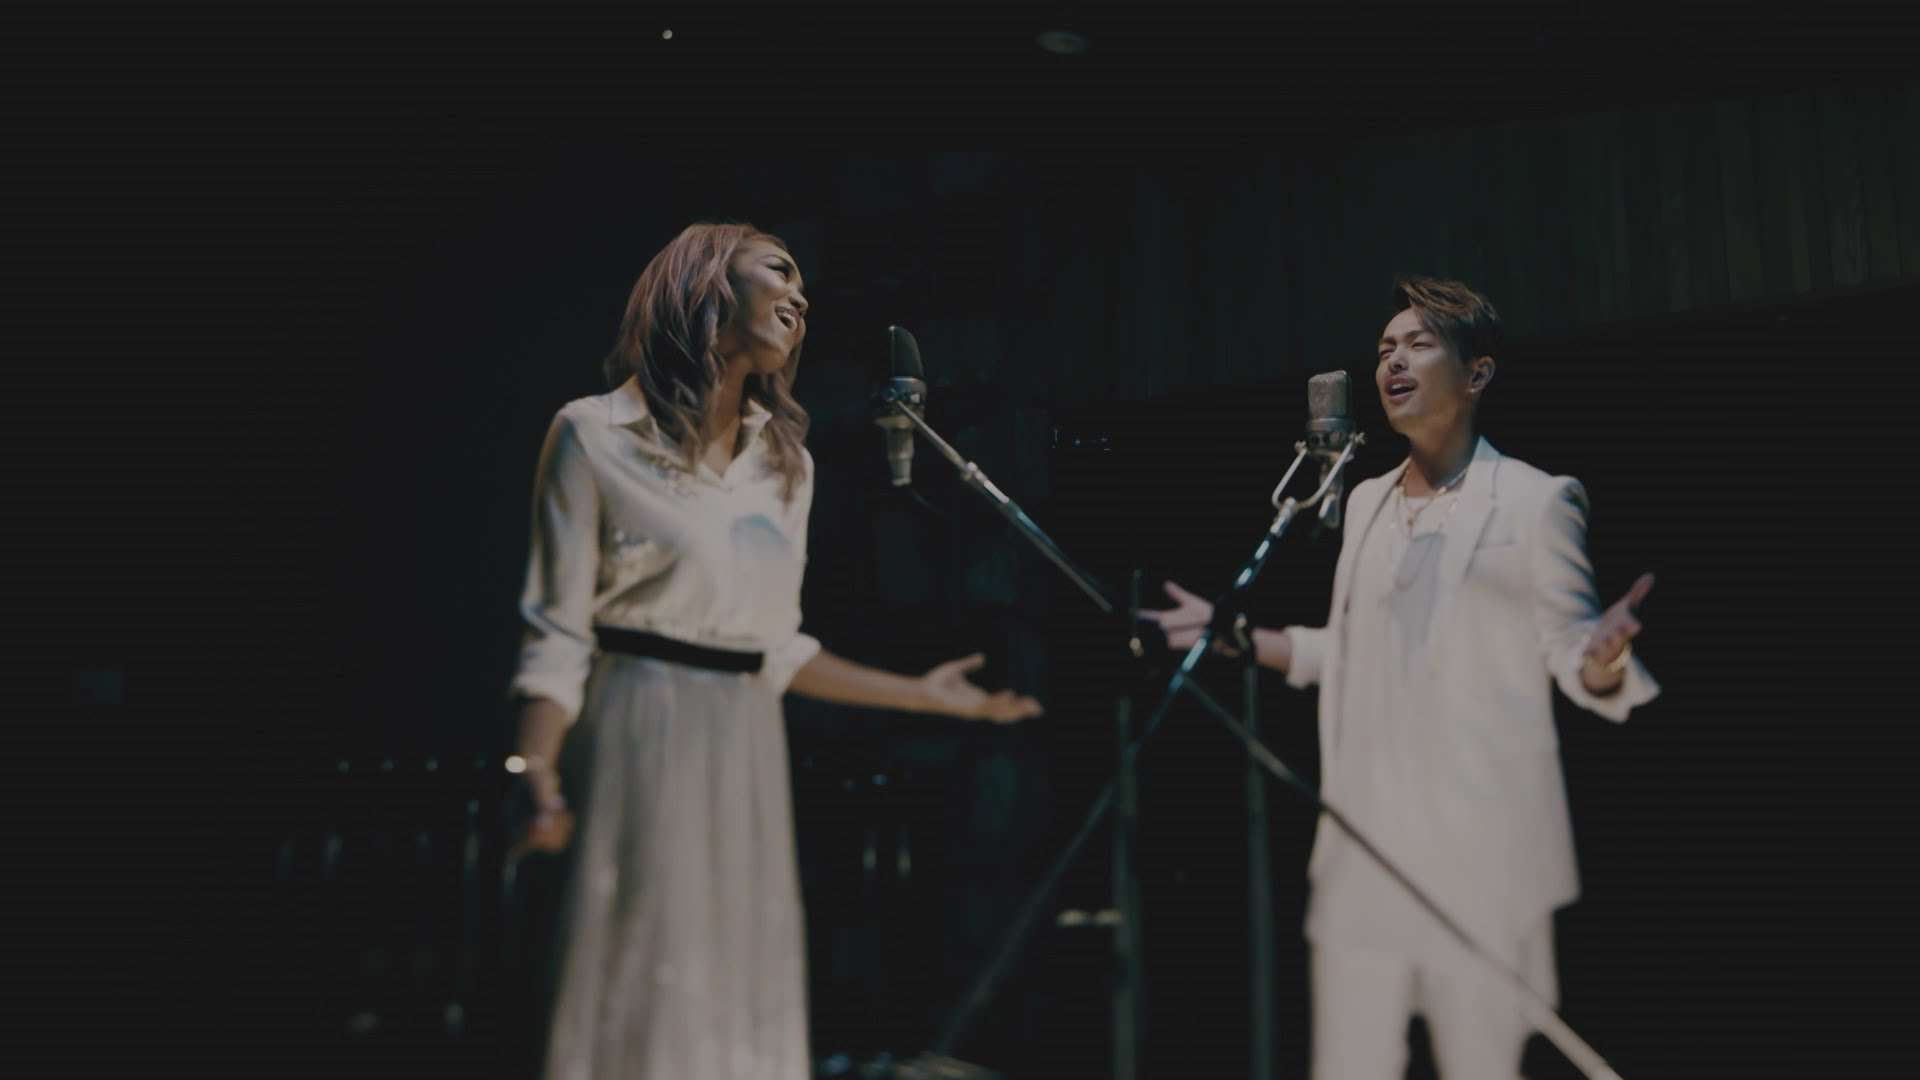 Crystal Kay feat. 今市隆二(三代目J Soul Brothers from EXILE TRIBE)「Very Special」スペシャル・ムービー【New AL「Shine」収録】 - YouTube